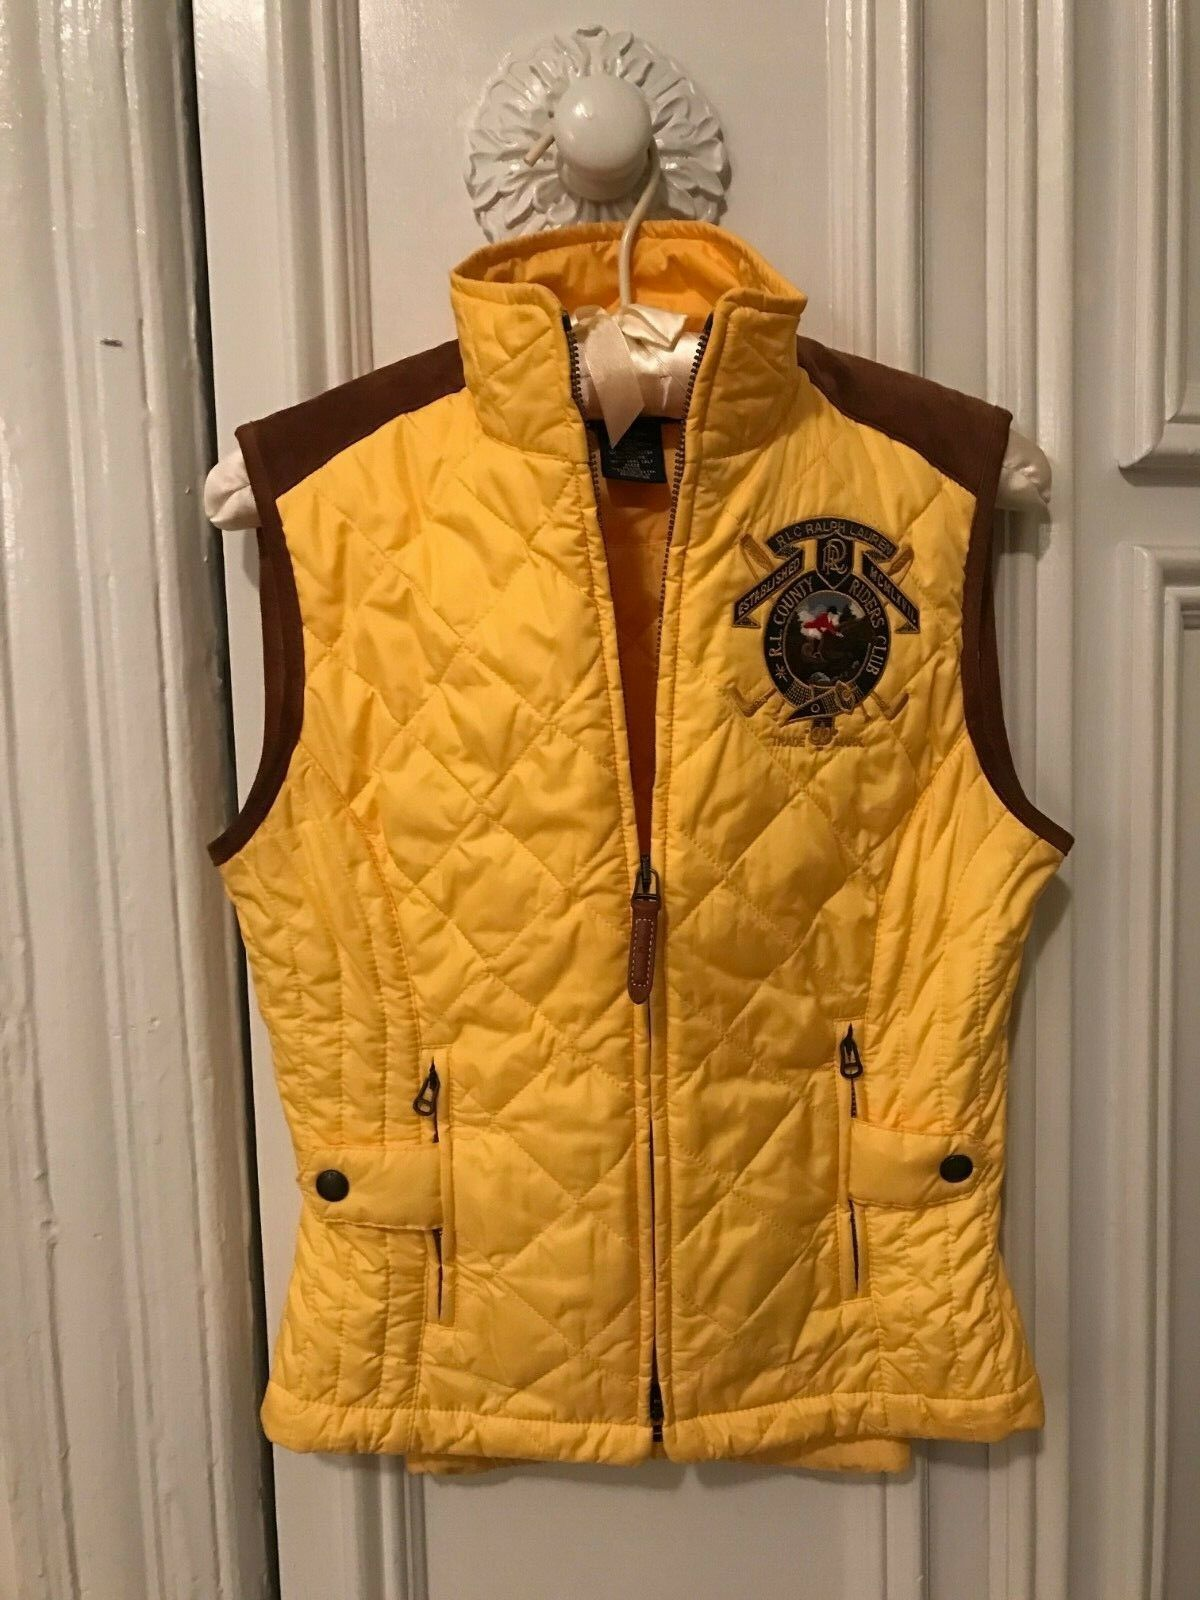 Ralph Lauren bluee Label Quilted Vest, Yellow with Tan Suede Trim, Size Small